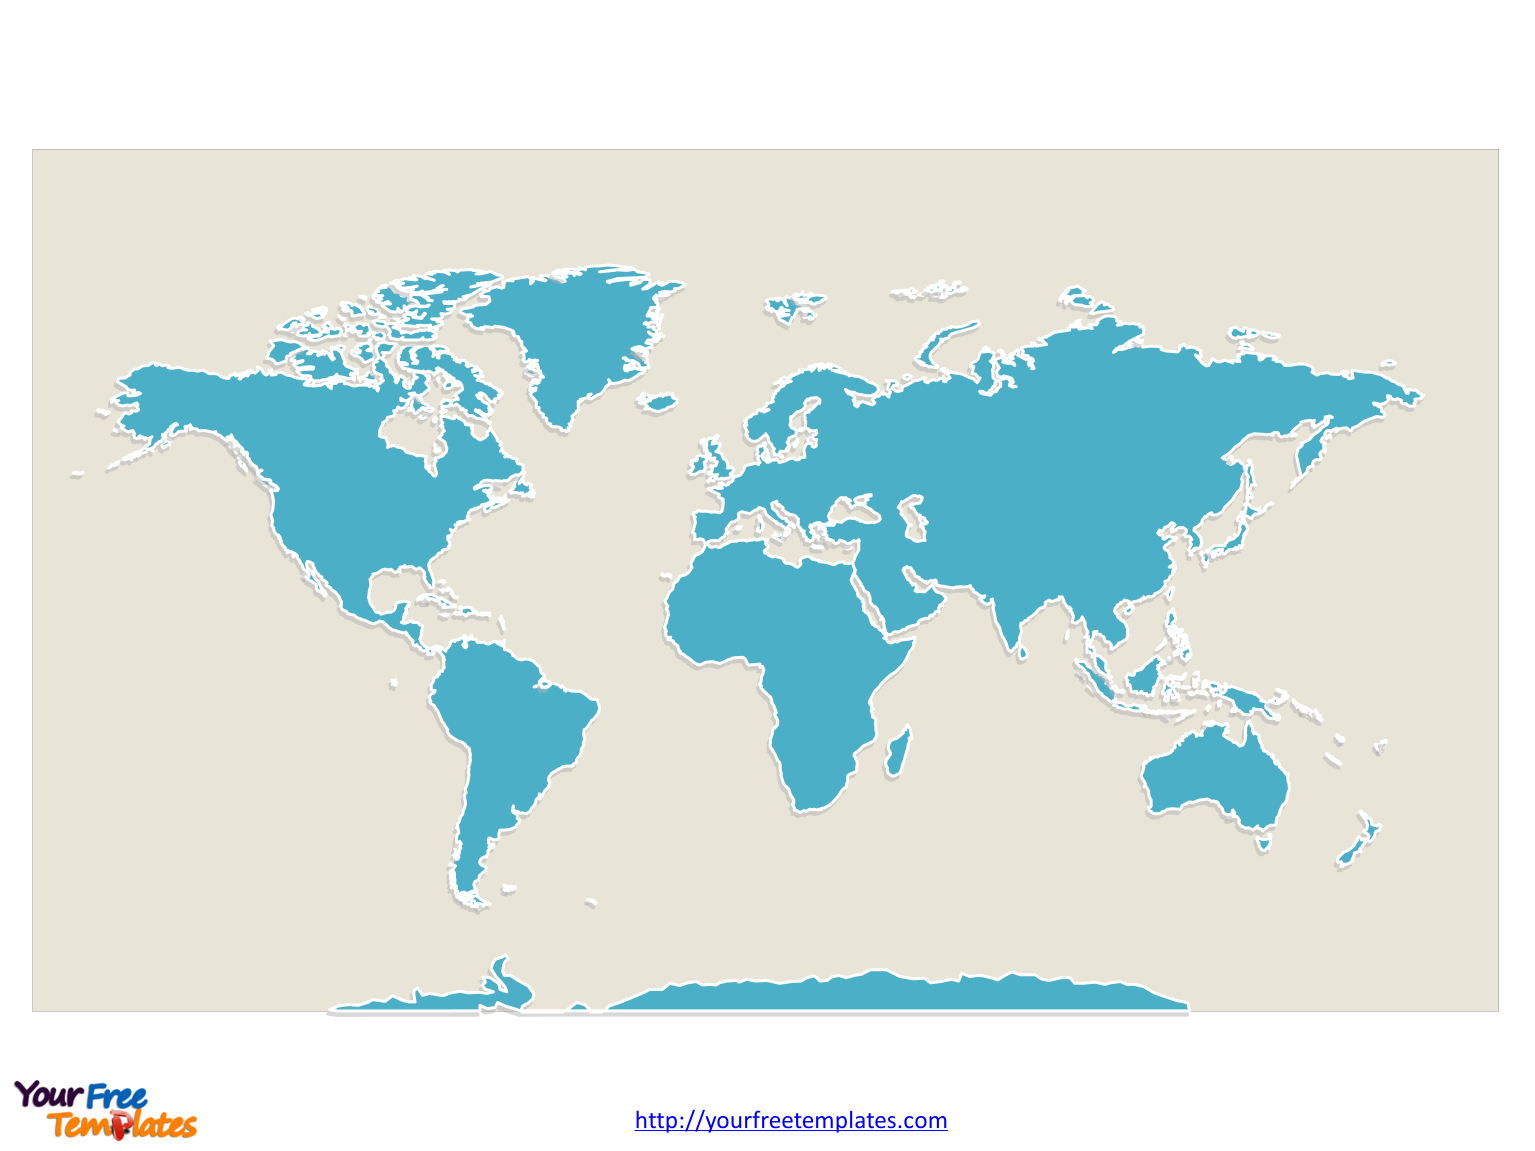 World Map With Continents - Free Powerpoint Templates - Free Printable World Map Pdf